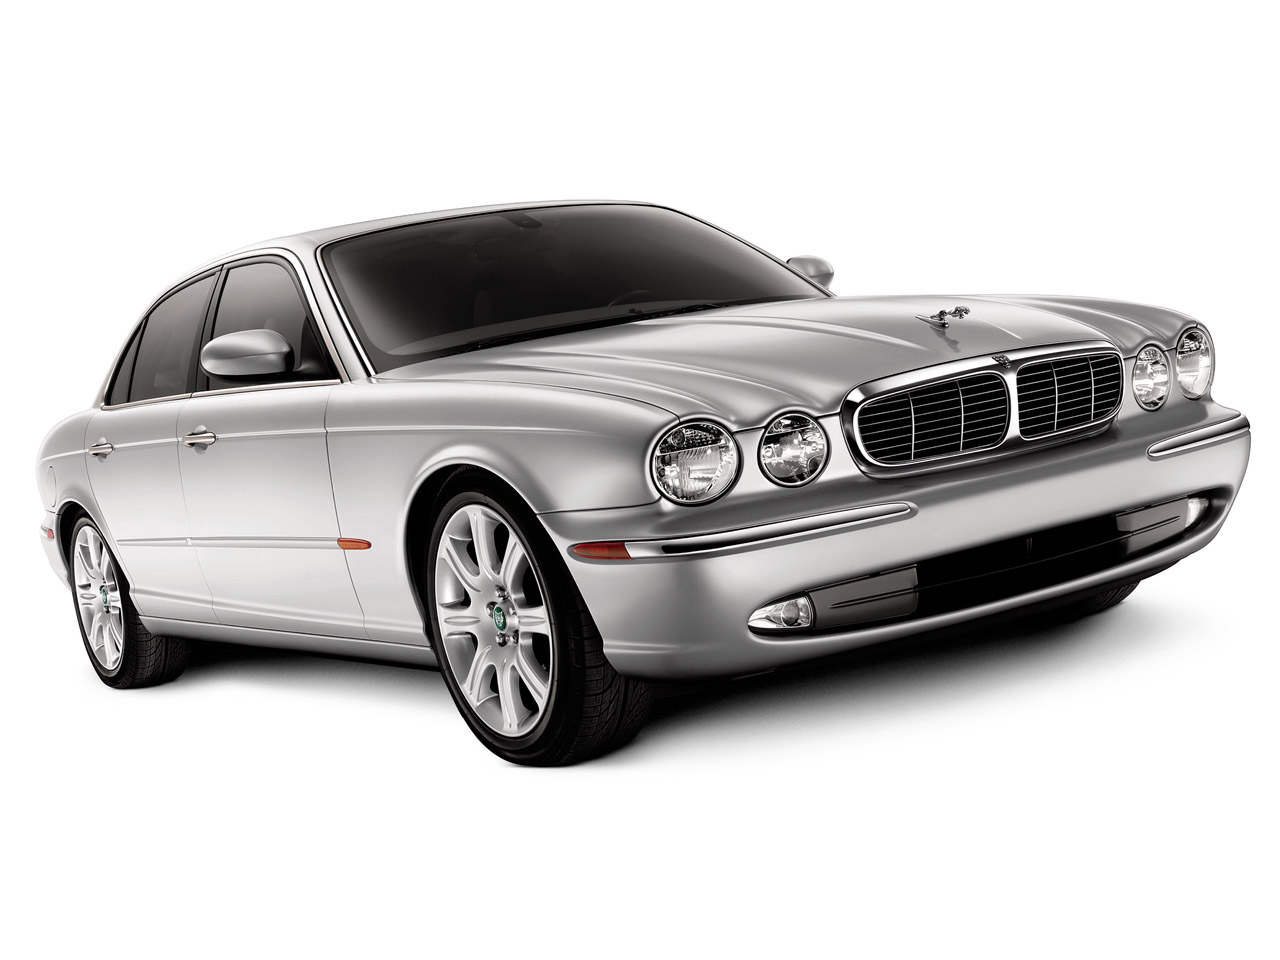 Auto Wallpapers Jaguar xj